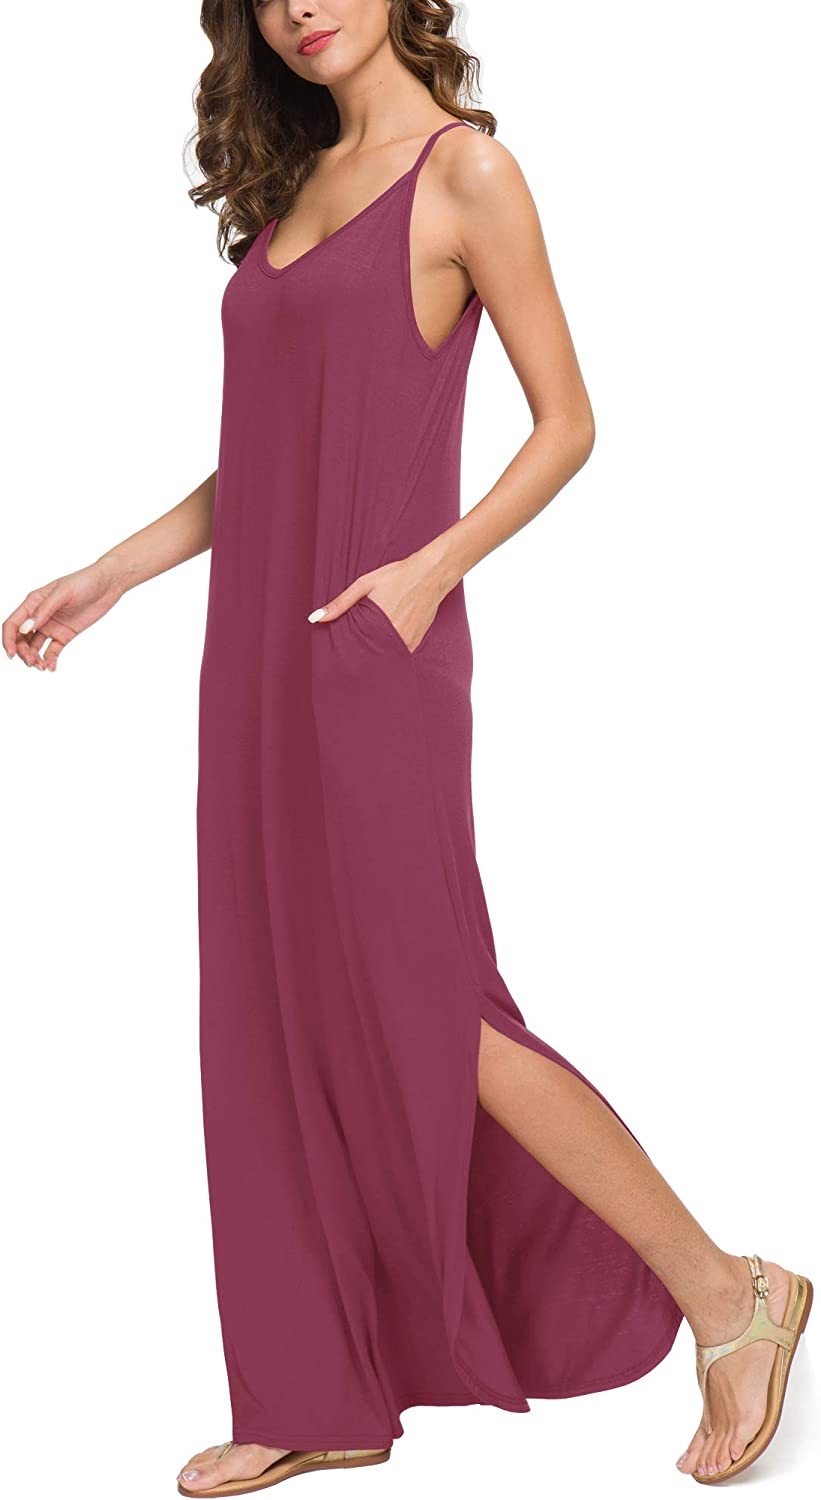 GRECERELLE Womens Summer Casual Loose Dress Beach Cover Up Long Cami Maxi Dresses with Pocket